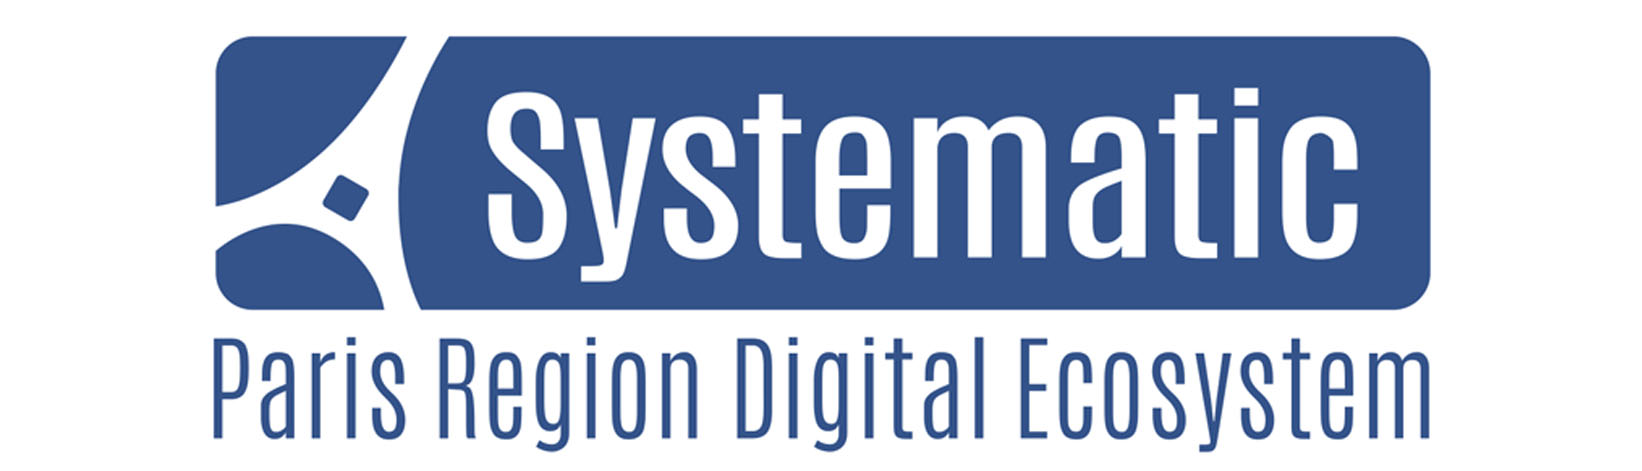 logo_0001_systematic